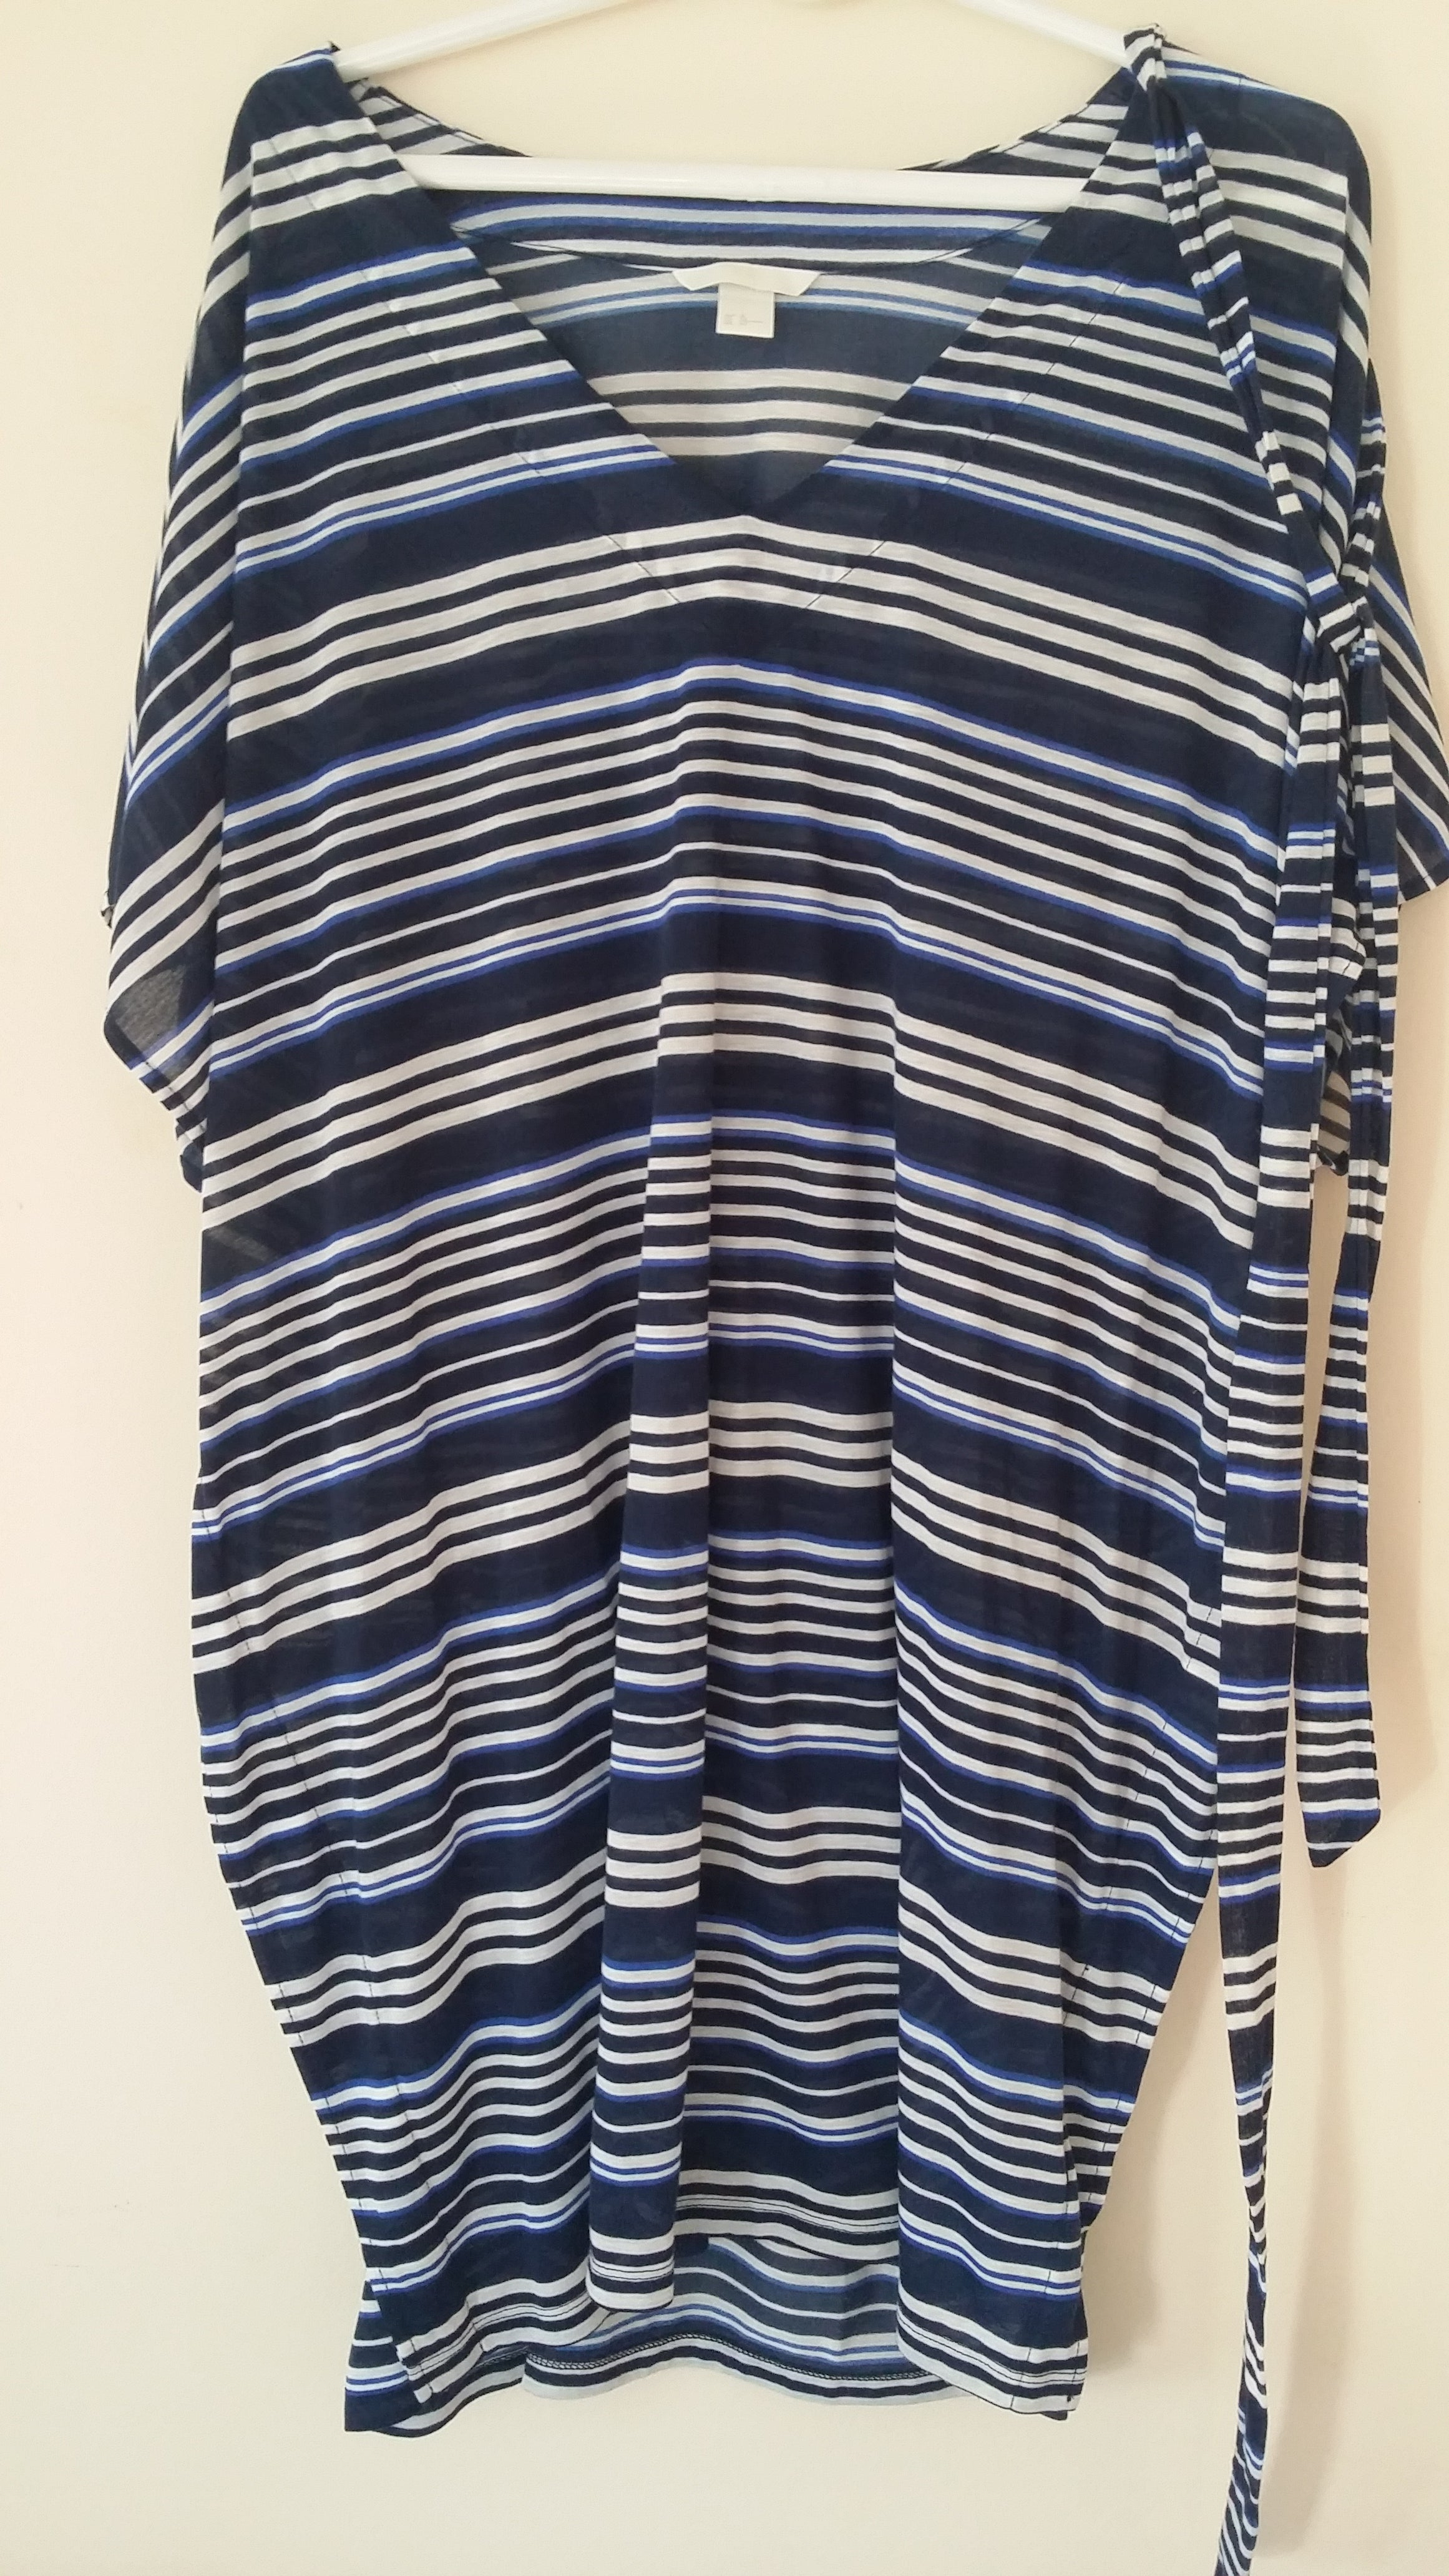 Vintage blue white striped blouse (SOLD!)